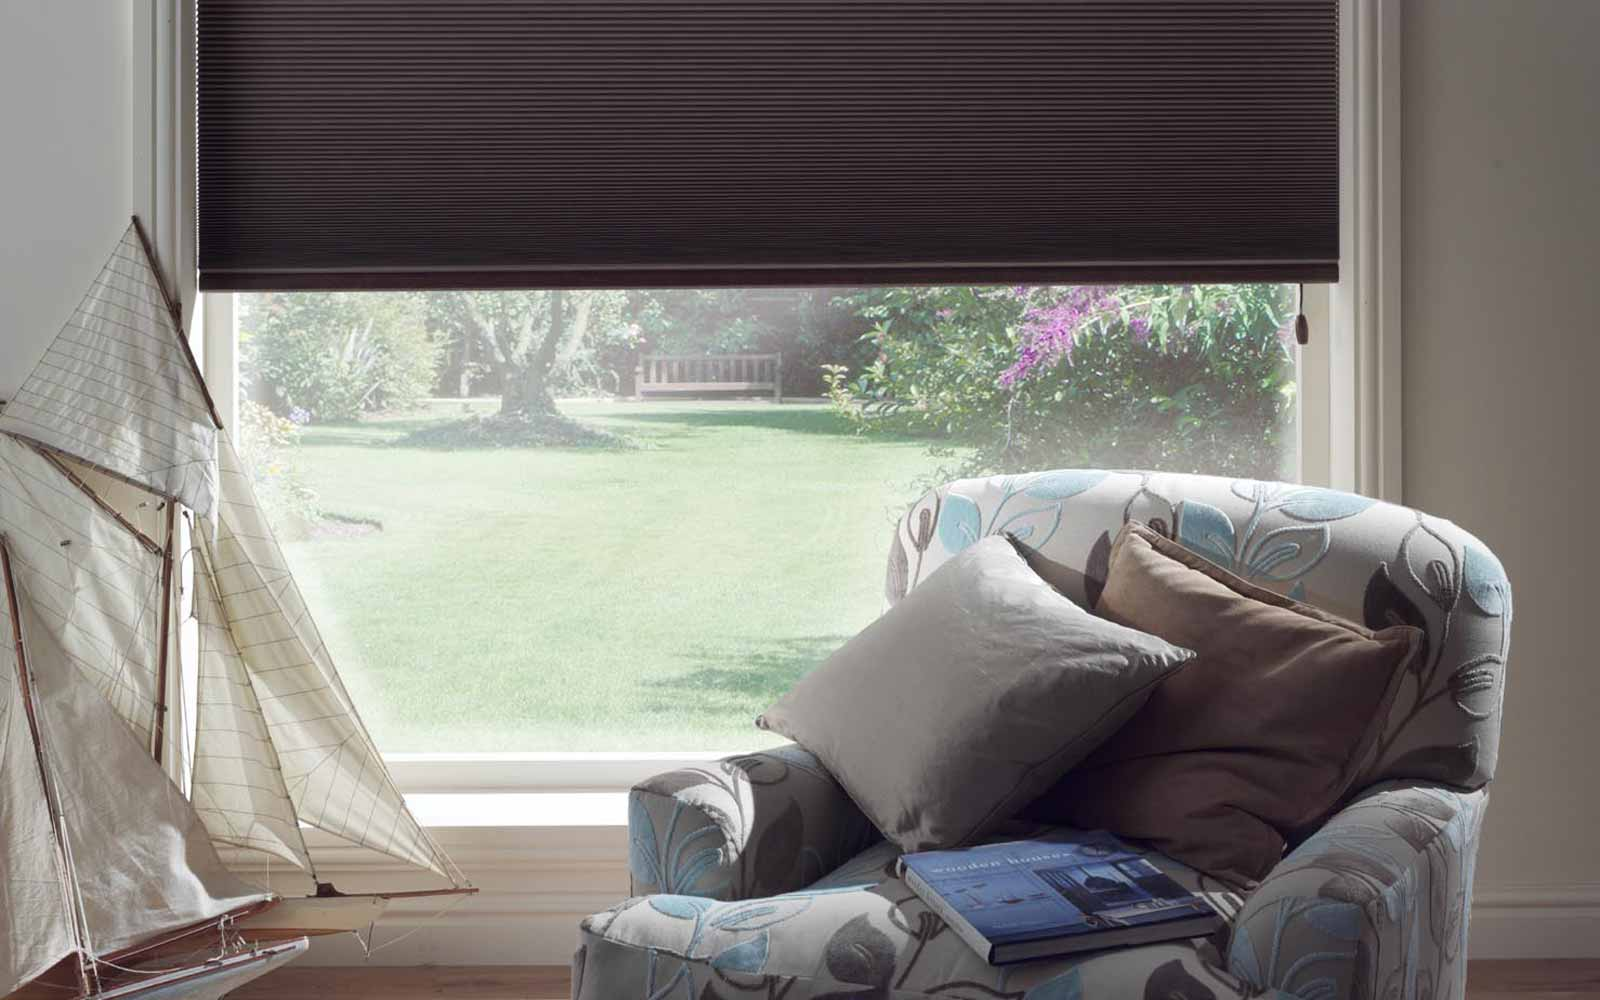 darkening when solution bedroom room blinds want it you ruffell window sunlight vigtraditional ultraglide fashions only brown solutions